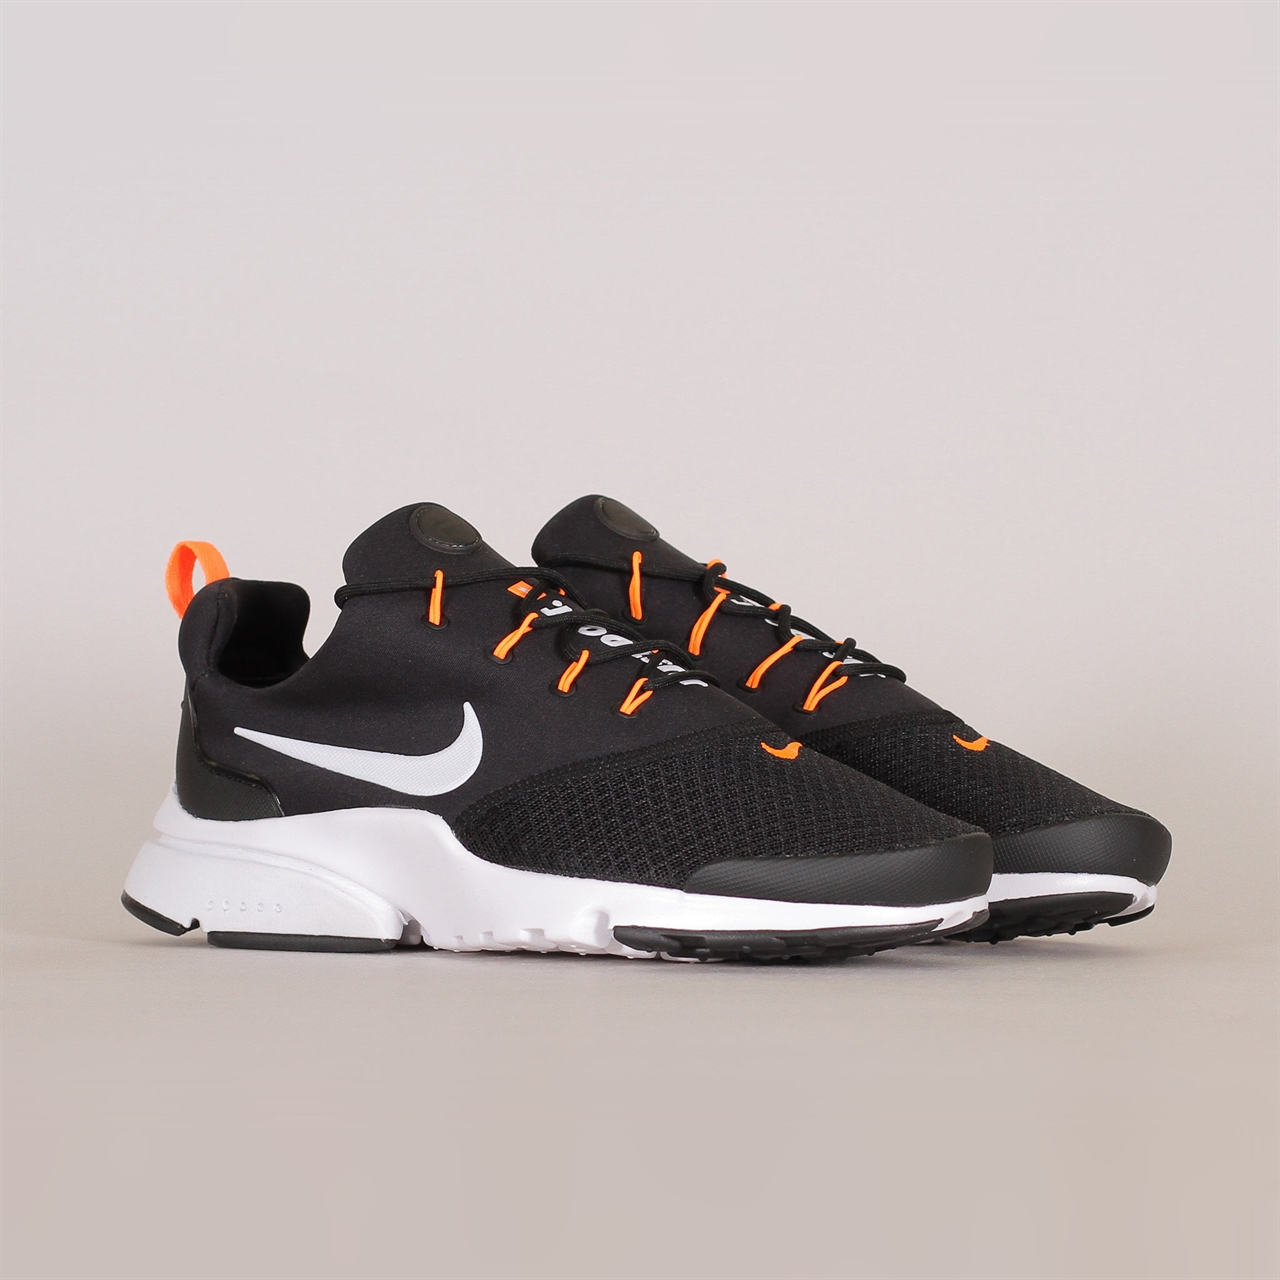 4745f86f62cd Shelta - Nike Sportswear Presto Fly Just Do It (AQ9688-001)